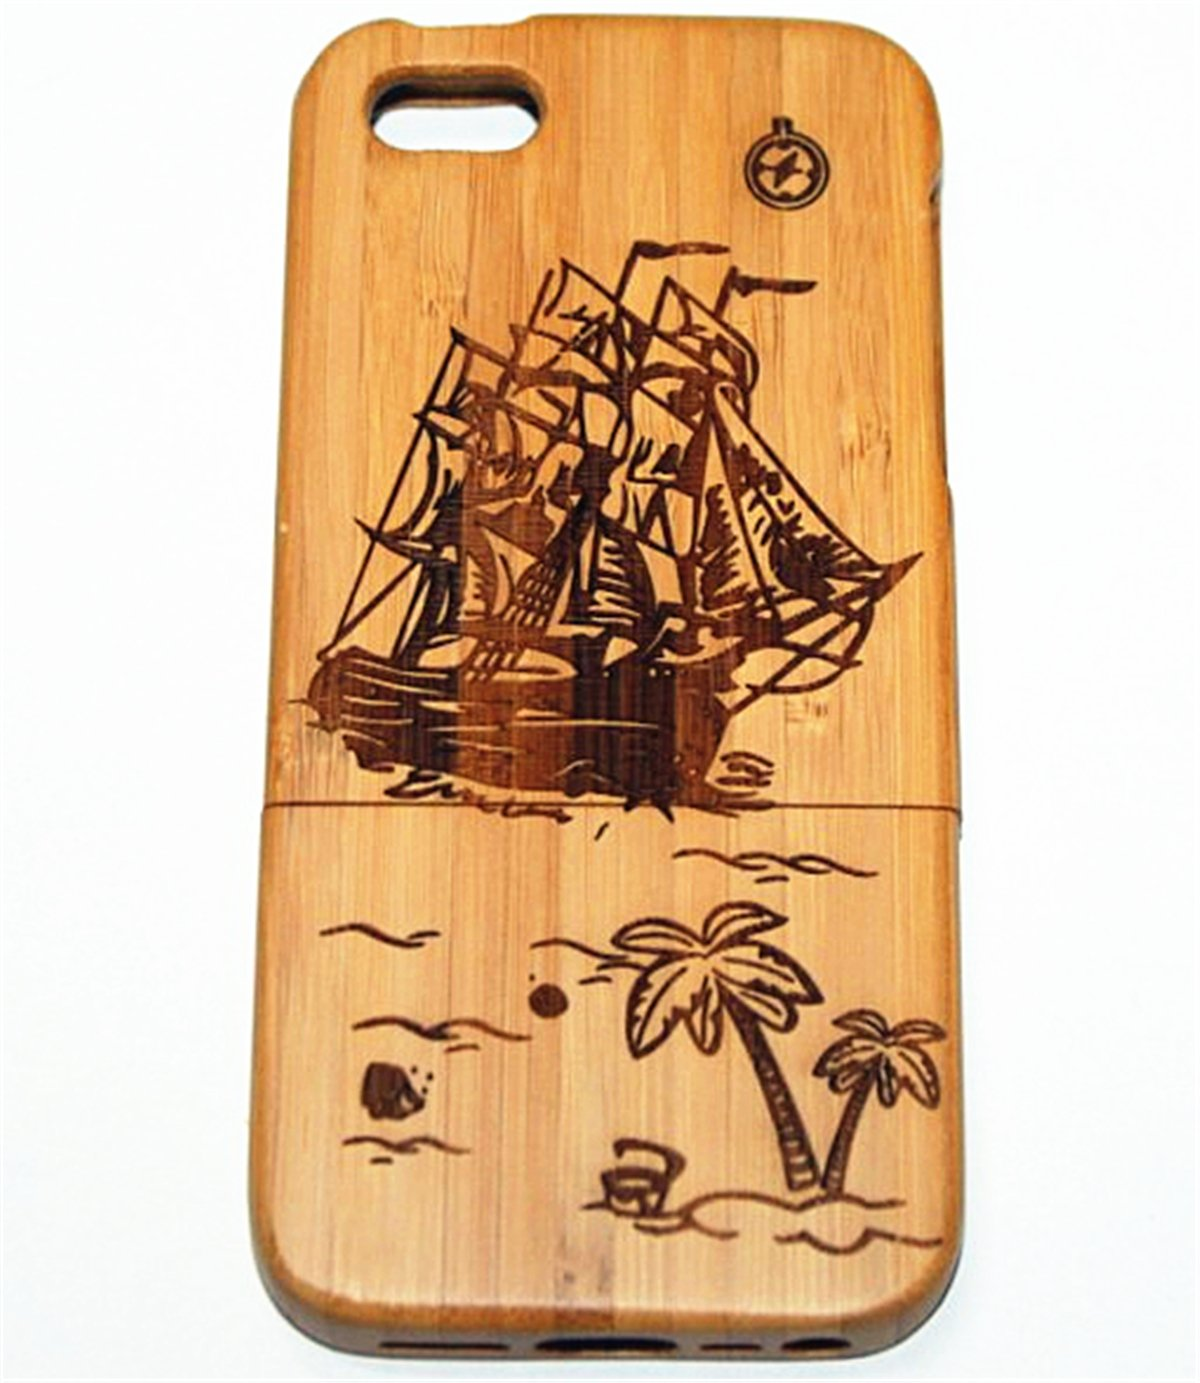 iPhone 6/6S Plus Case, Firefish Wood Life Natural Handmade Carved Wooden Hard Case Cover Protective Shell For iPhone 6/6S Plus ( With A Stylus) -Sailing